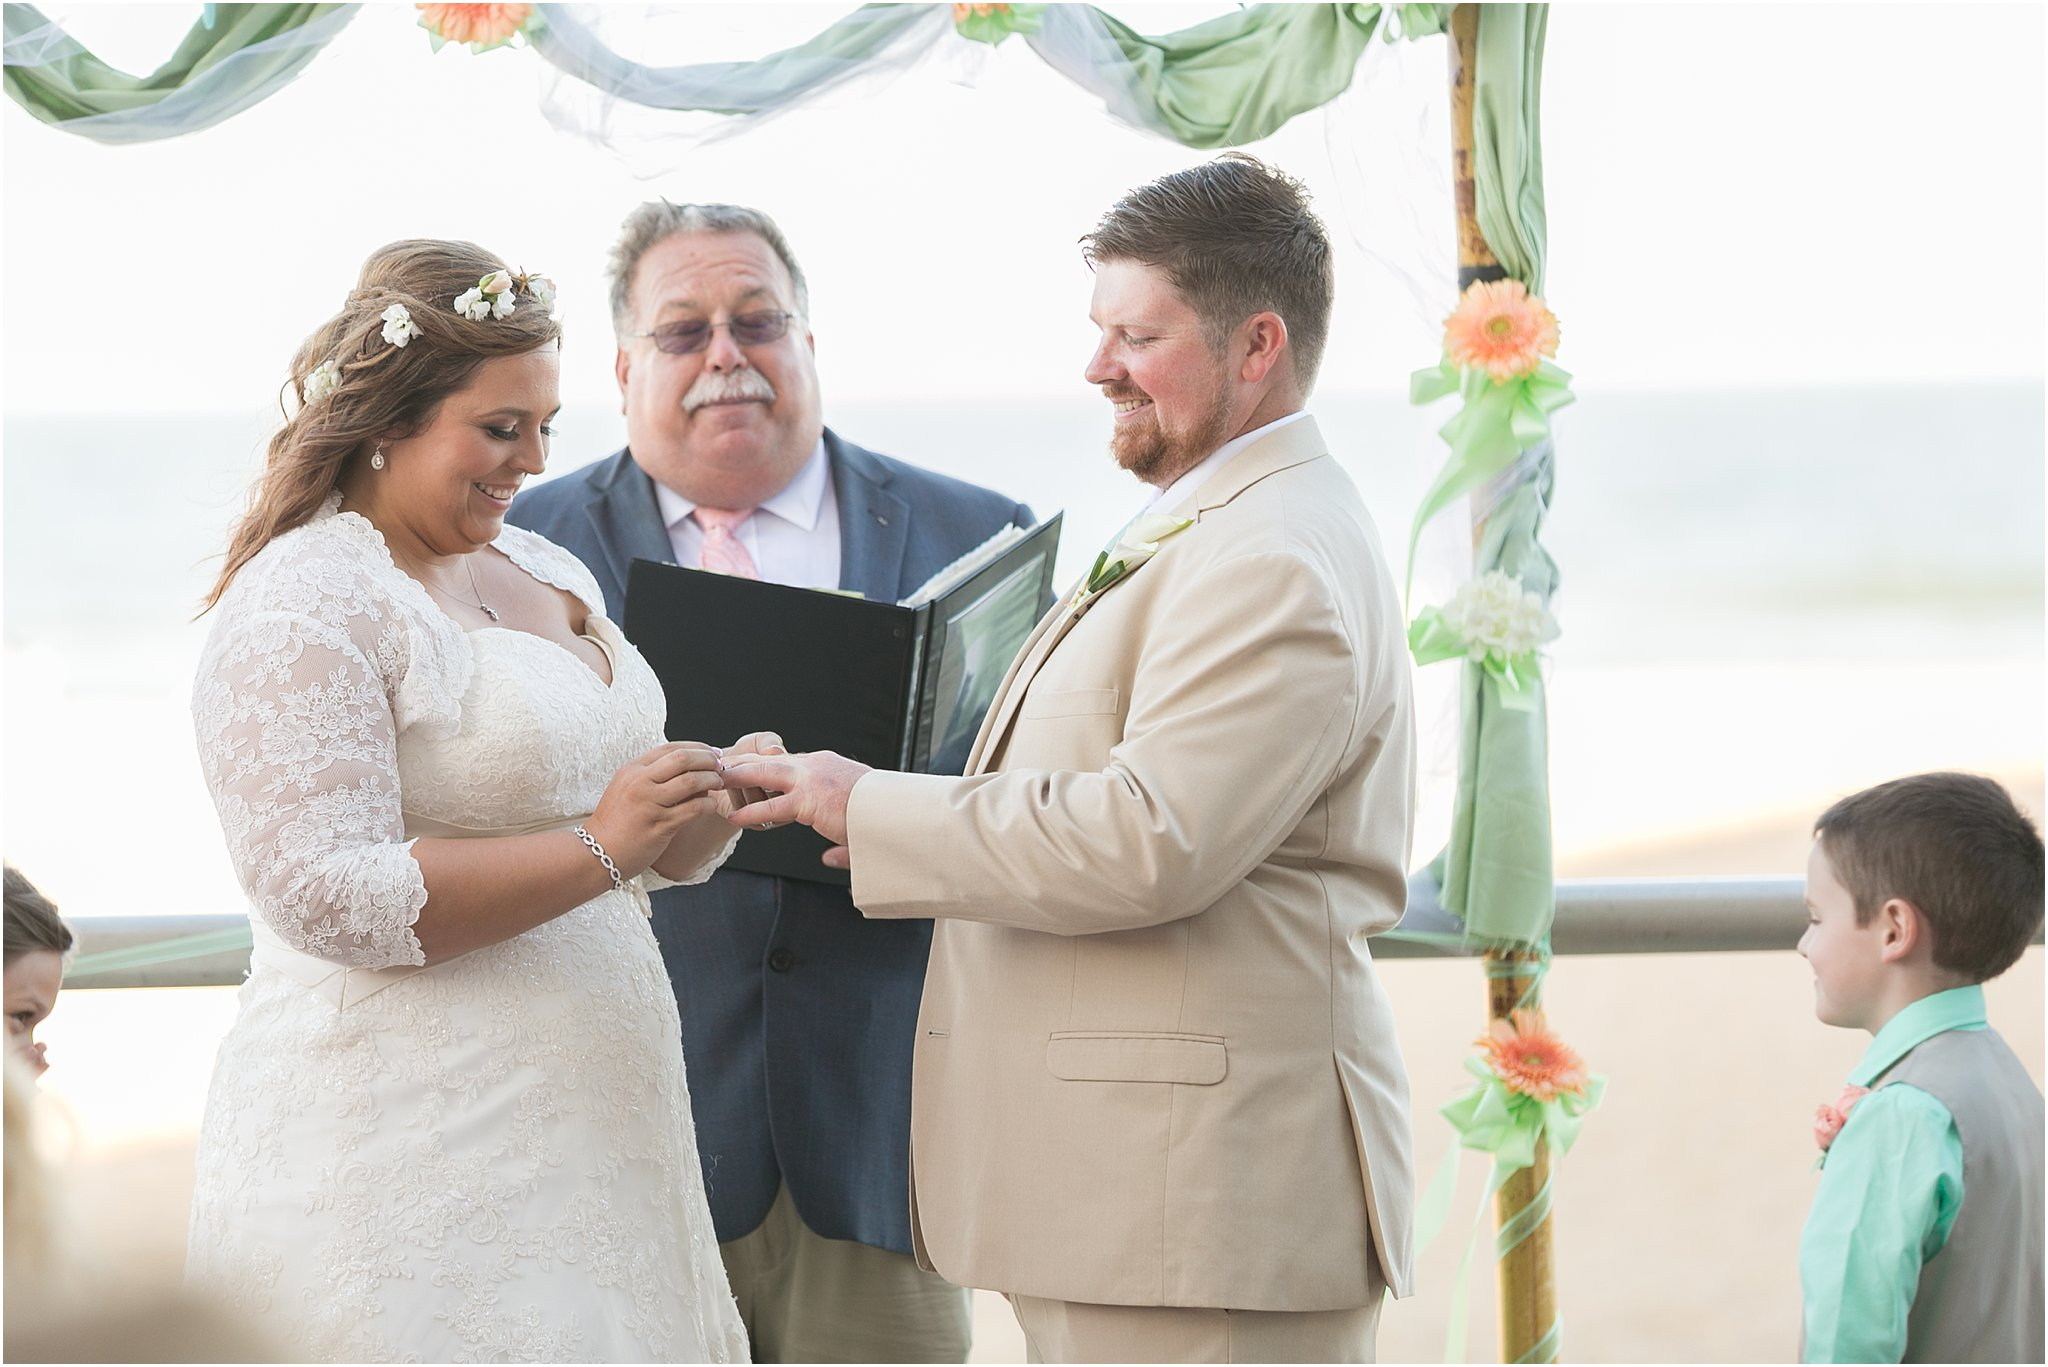 jessica_ryan_photography_virginia_beach_wedding_the_wyndham_oceanfront_beach_wedding_0870